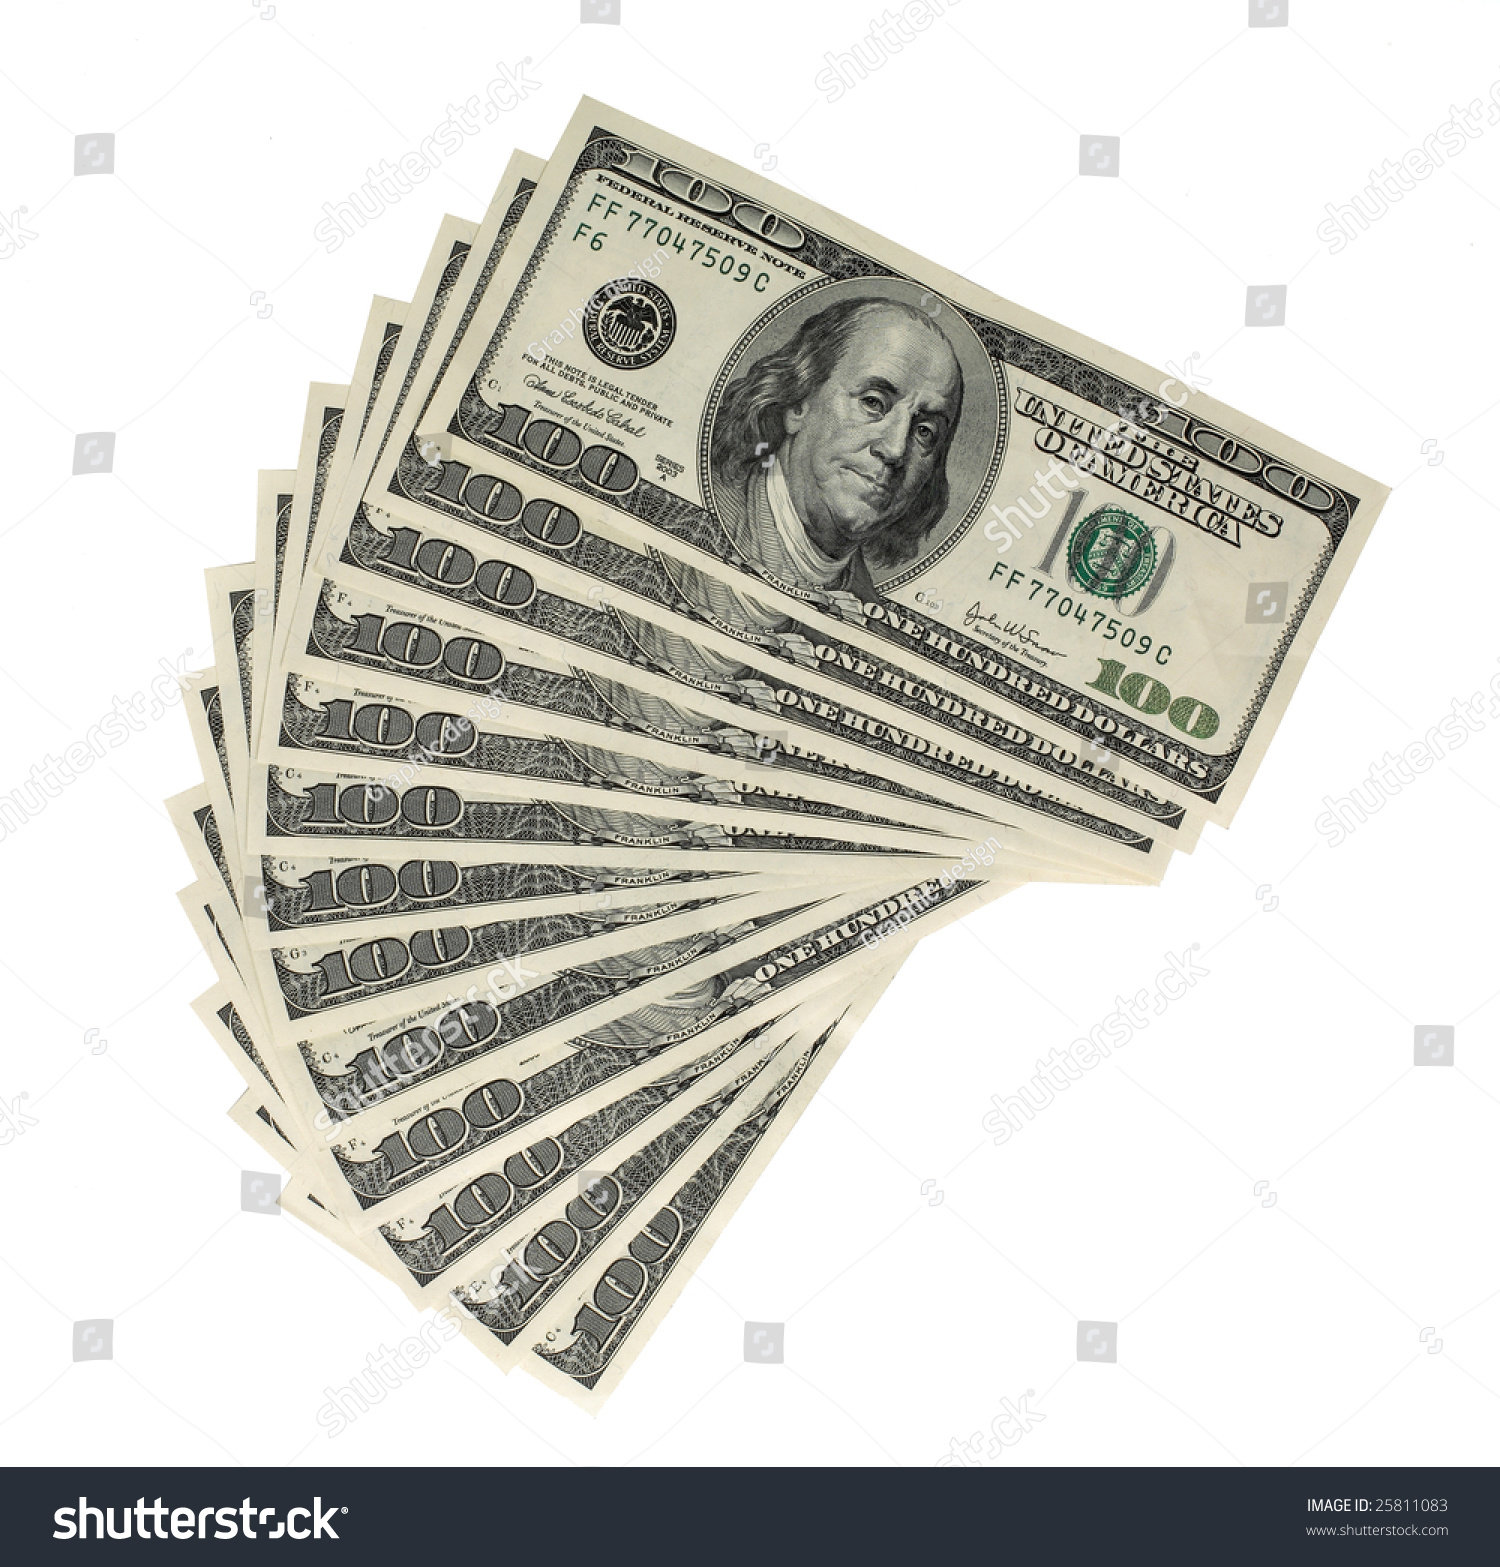 worksheet Money Bills american money 100 bills piled high stock photo 25811083 in and waiting to be picked